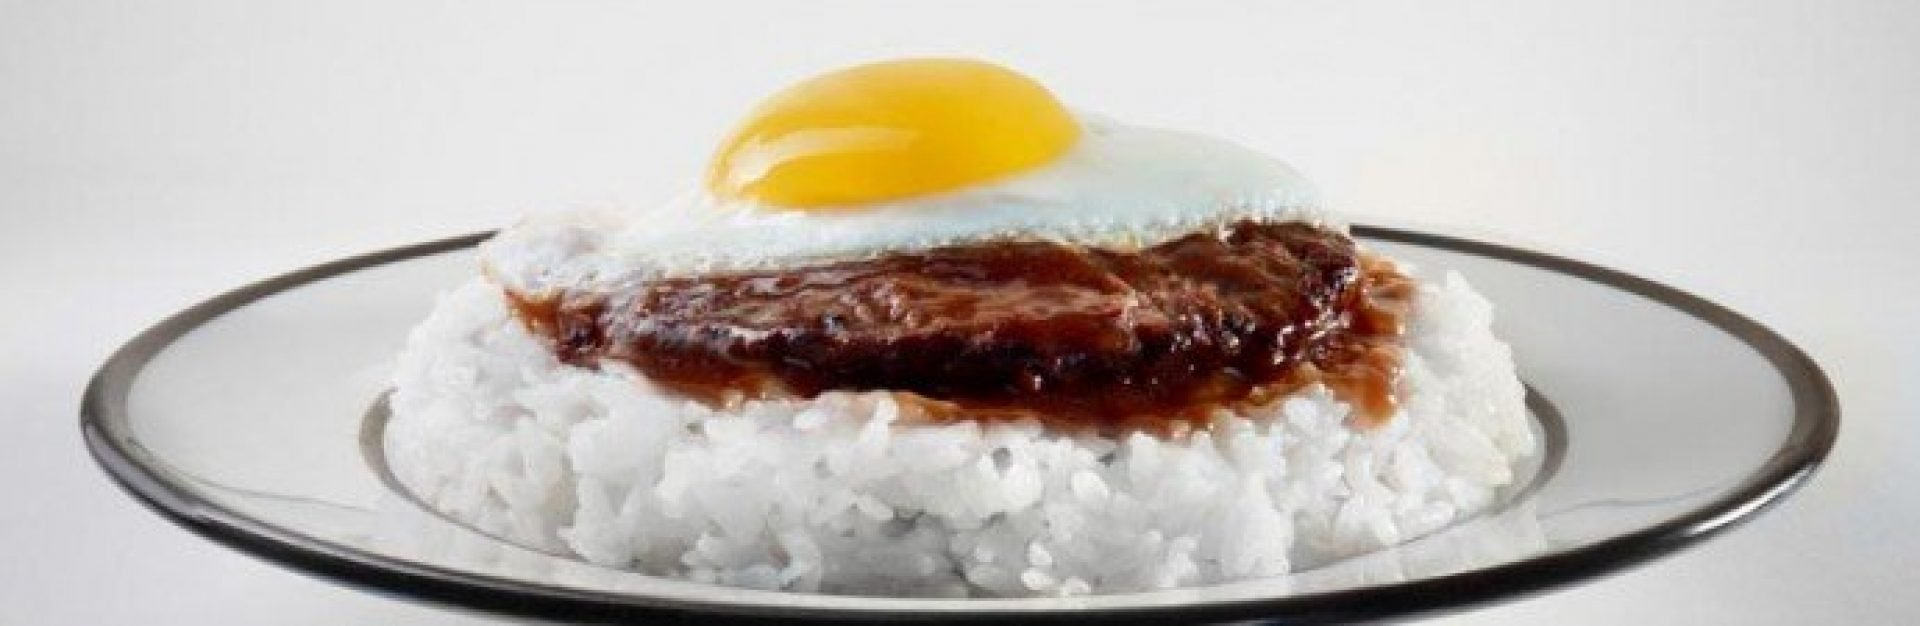 Loco Moco Capital